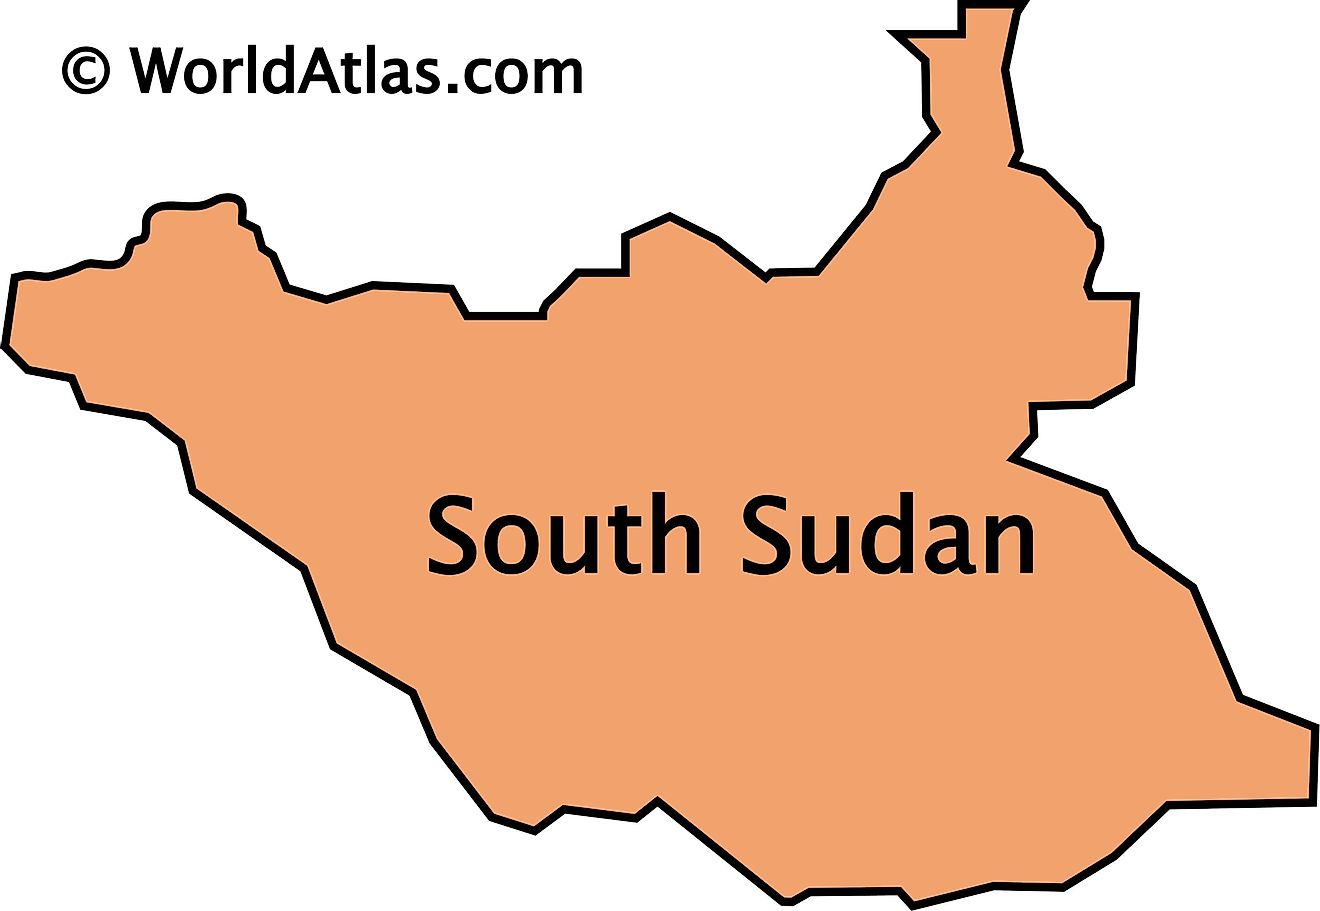 Outline Map of South Sudan